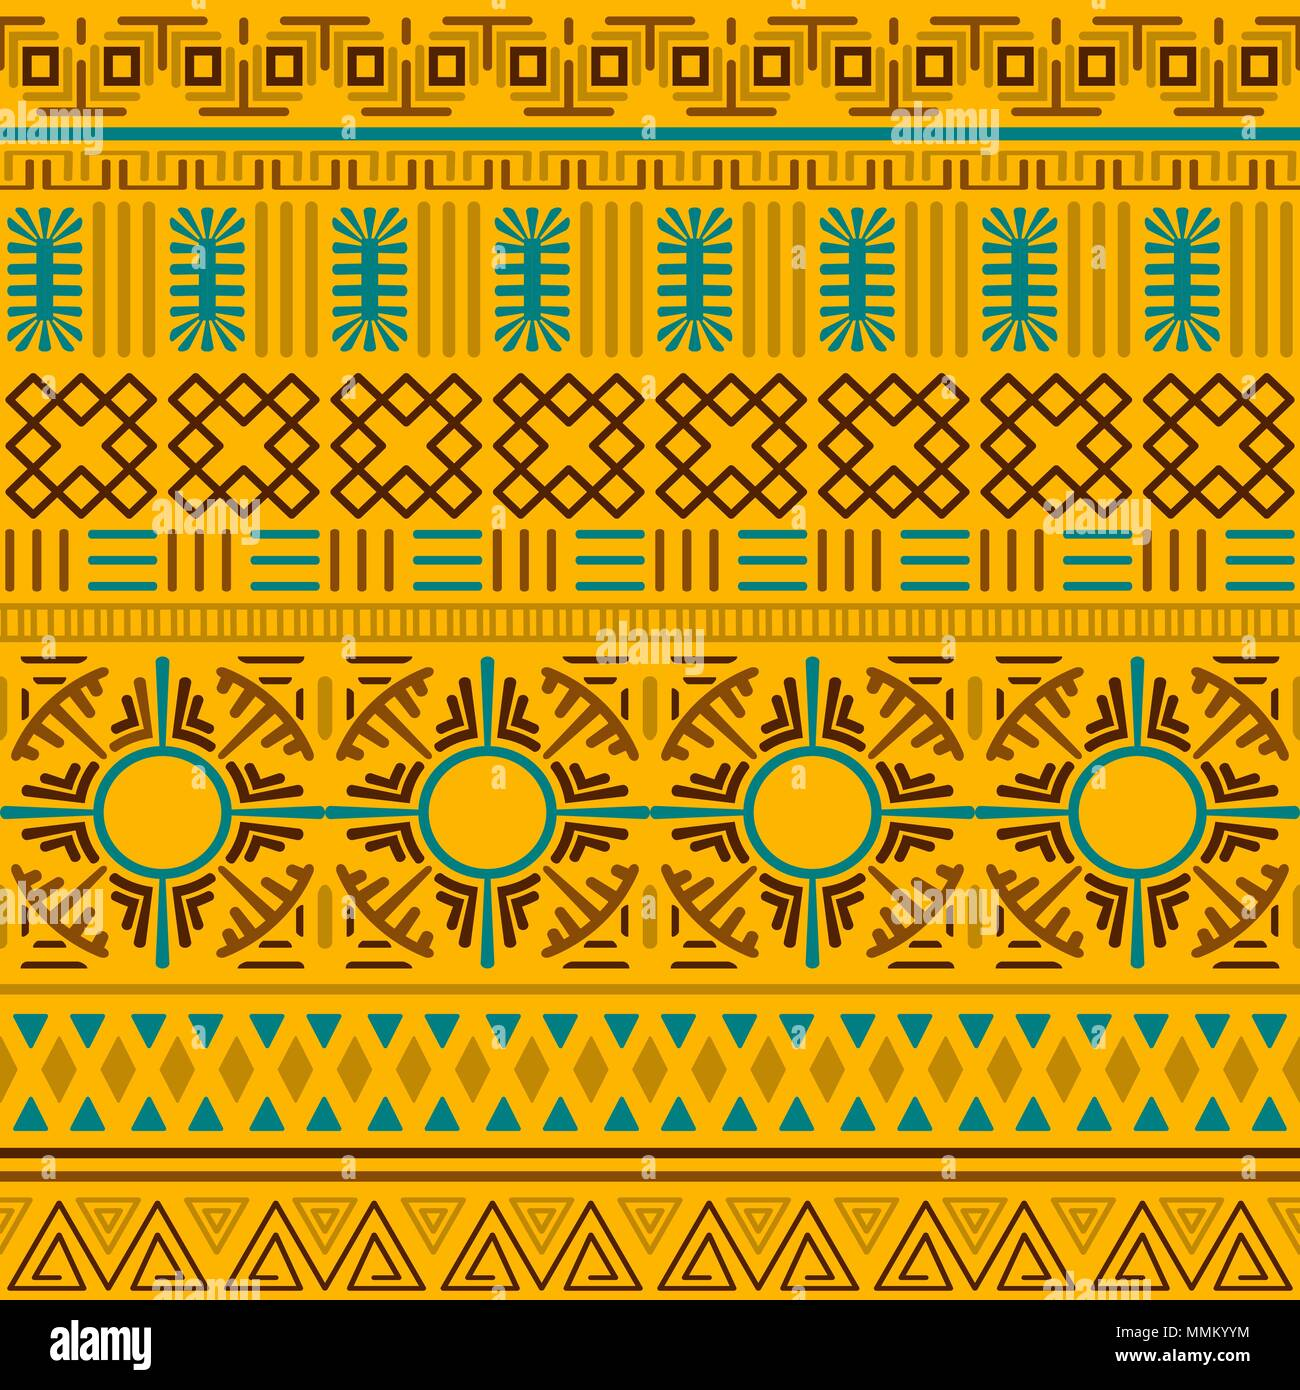 Tribal Ethnic Seamless Pattern Abstract Geometric Ornament With